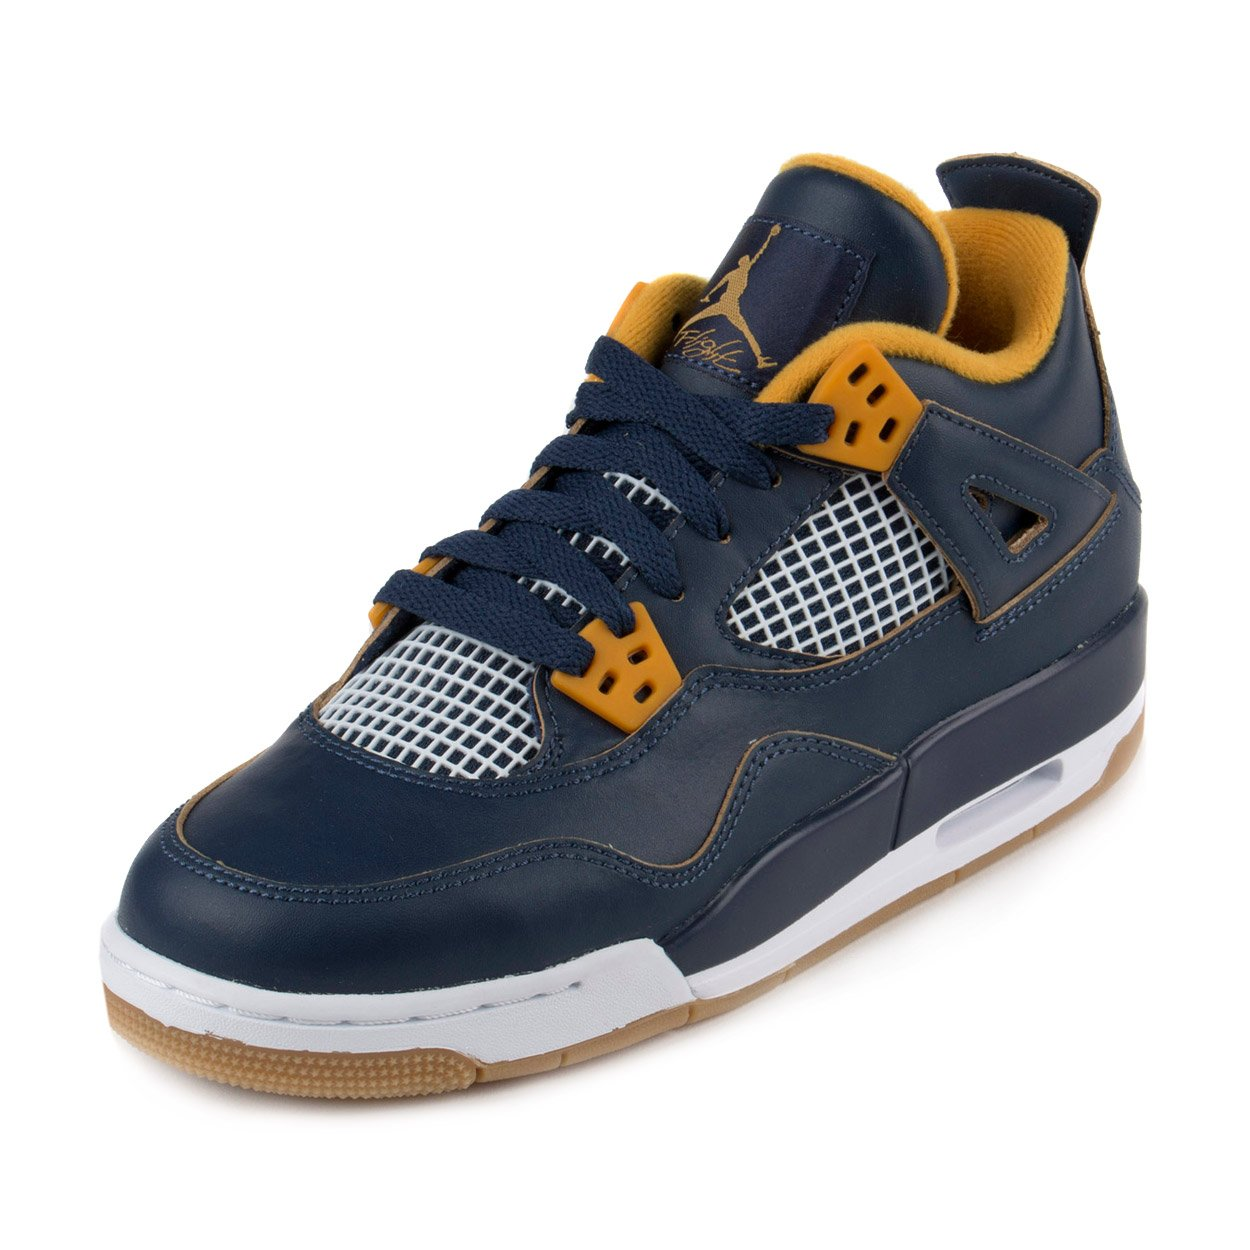 JORDAN 4 Retro Big Kids Style, Mid Navy/Metallic Gold Str/Gold Lf/White, 7